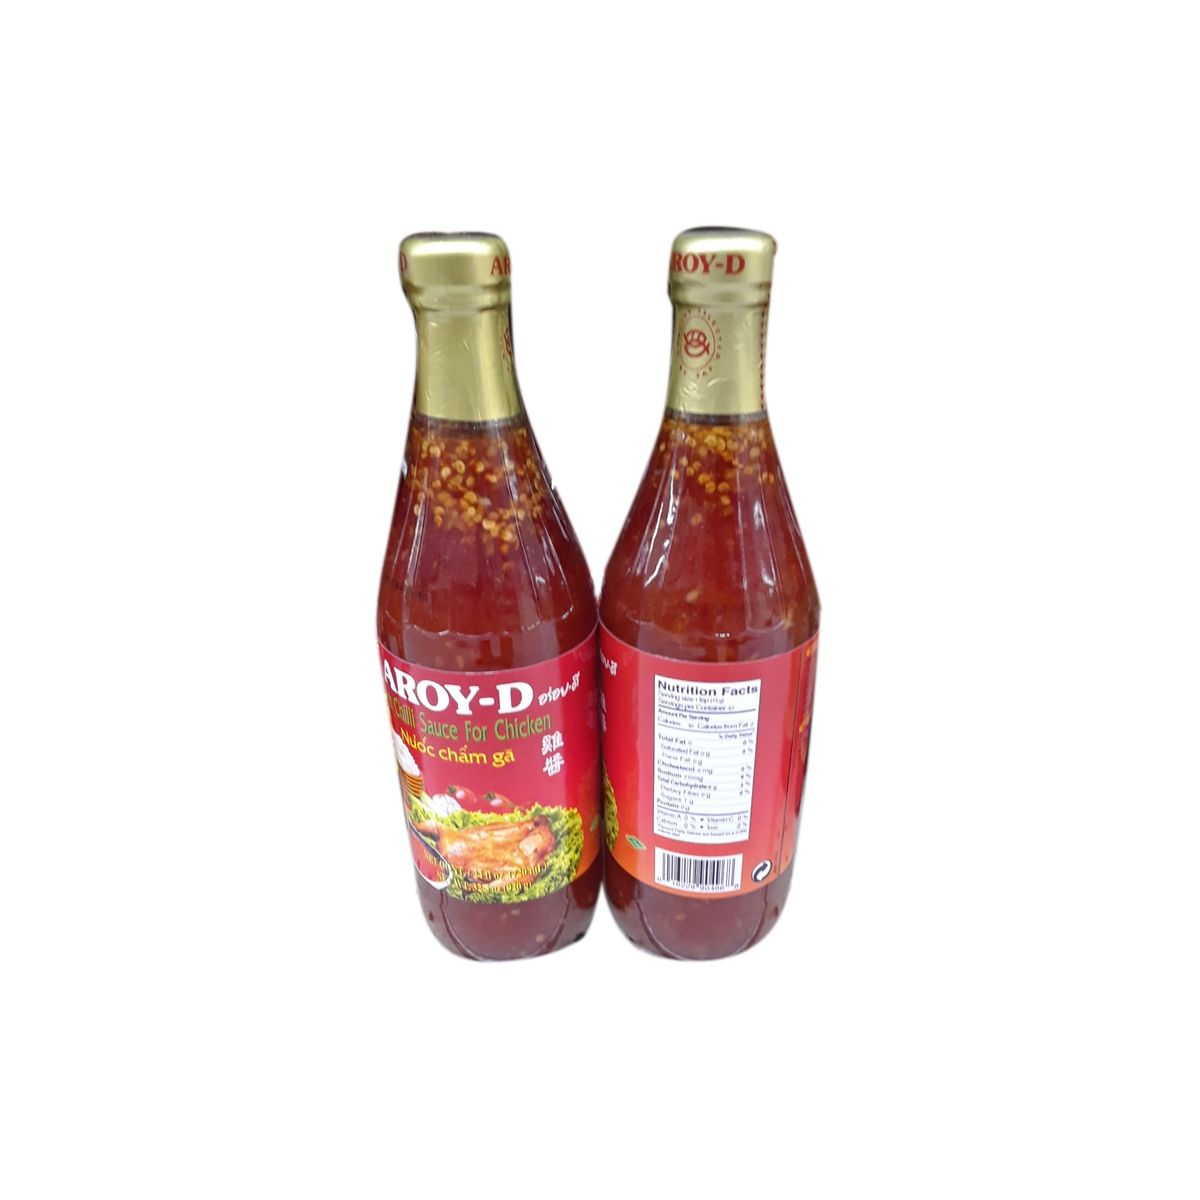 Seasoning Arroy D Sweet Chilli Sauce For Chicken 32oz